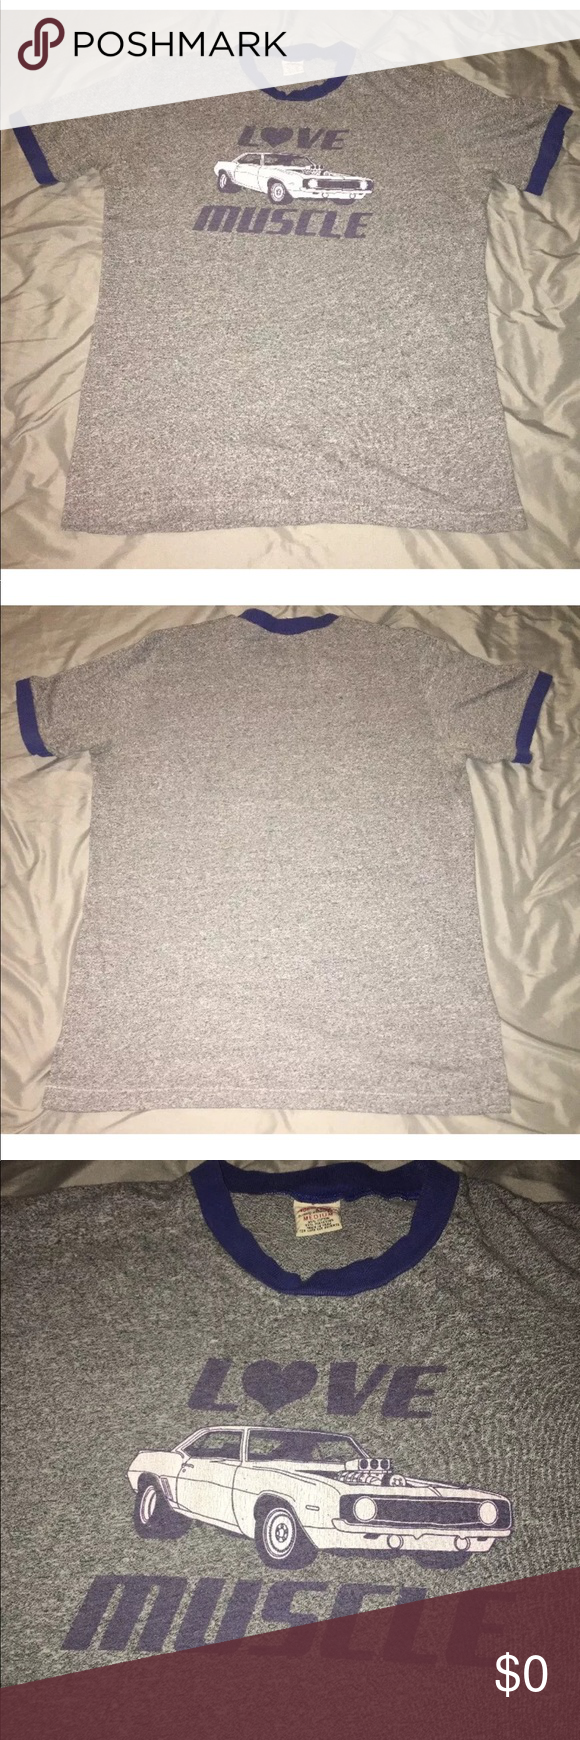 Abercrombie Fitch Authentic Love Muscle Vintage Measurements Are In Inches Taken While Clothing Is Laying Flat Armpit To Abercrombie How To Wear Tee Shirts